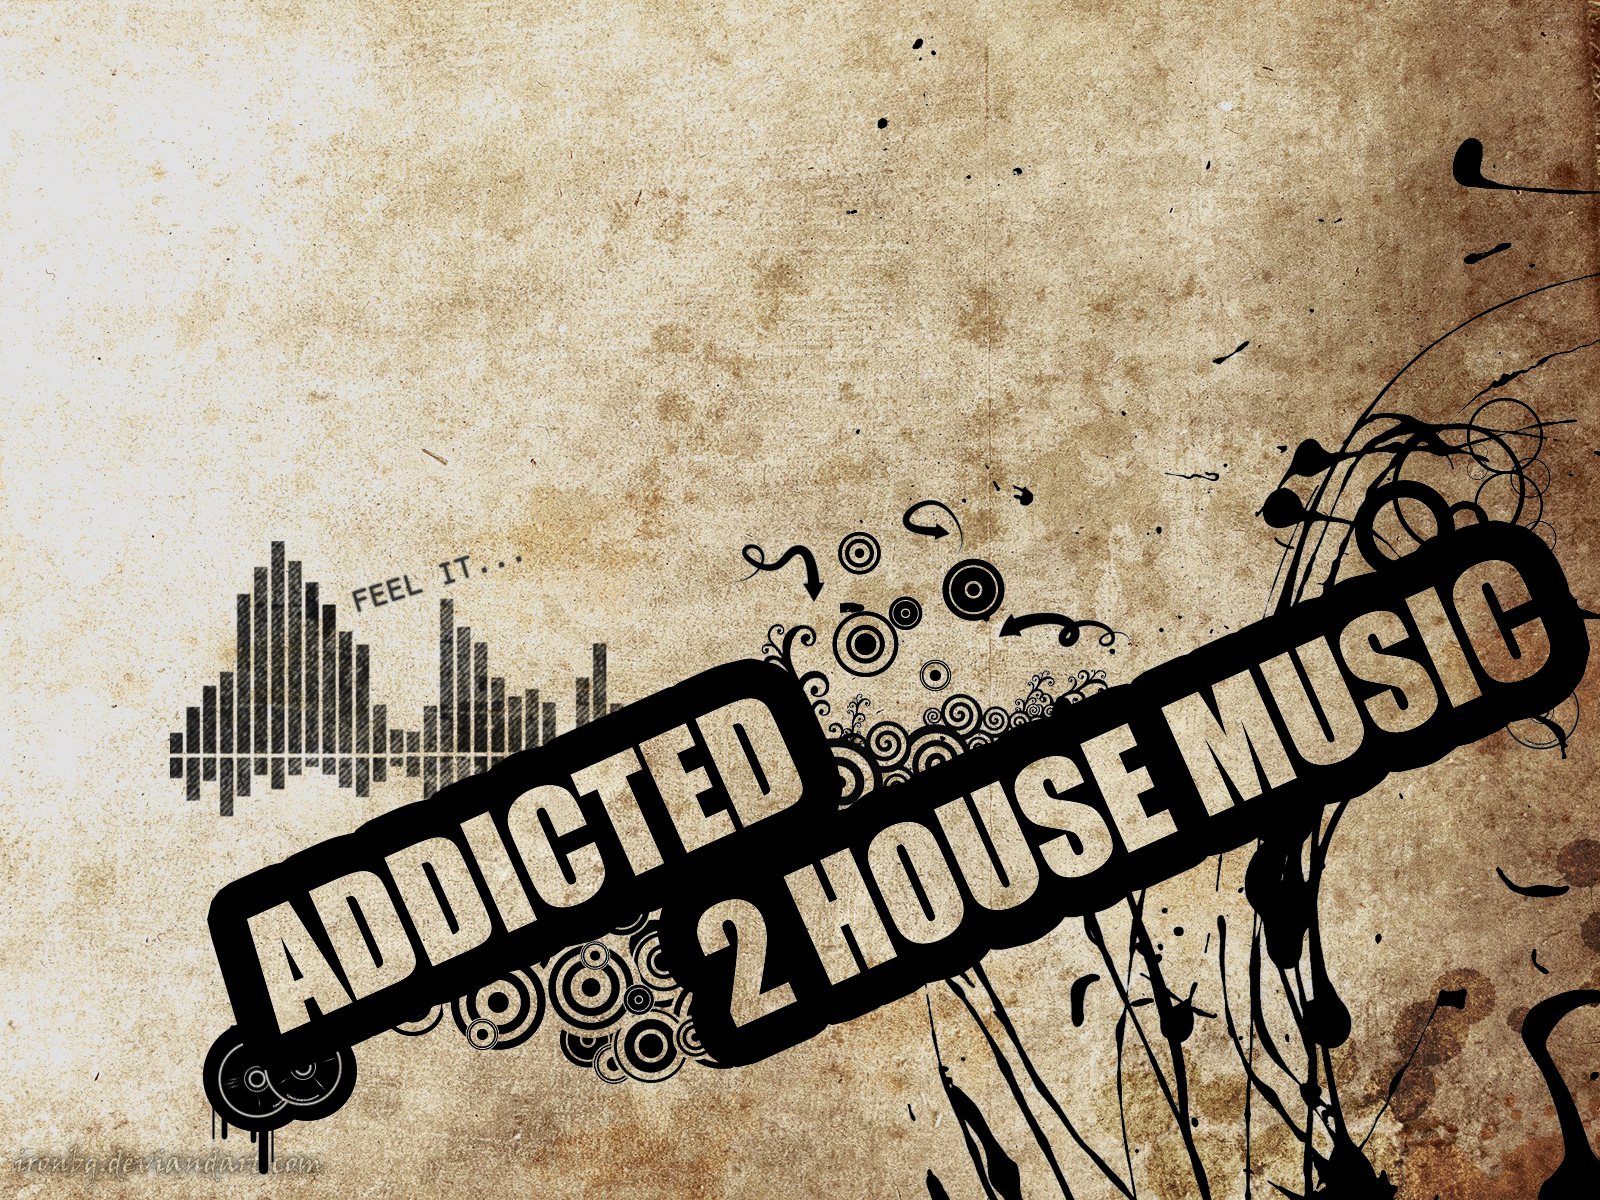 http://1.bp.blogspot.com/_VxvJML0Qa-o/TTWccdEDTJI/AAAAAAAAAHk/CLGg3aS85GA/s1600/Addicted_2_House_Music_by_iRoNbg.jpg